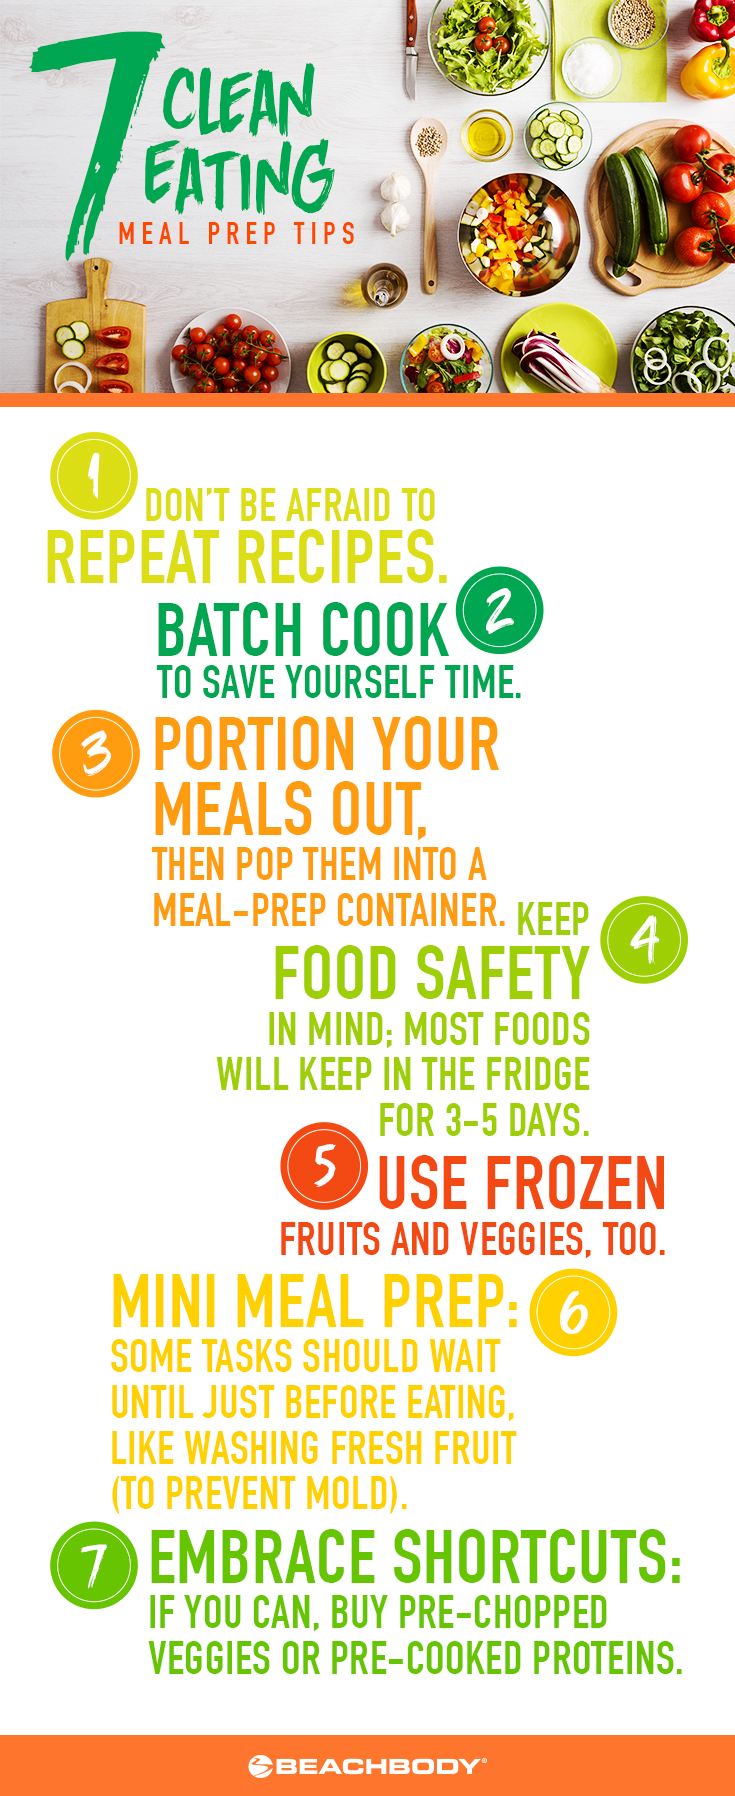 clean eating, meal prep, eating clean, meal prep tips, meal plans, meal prepping